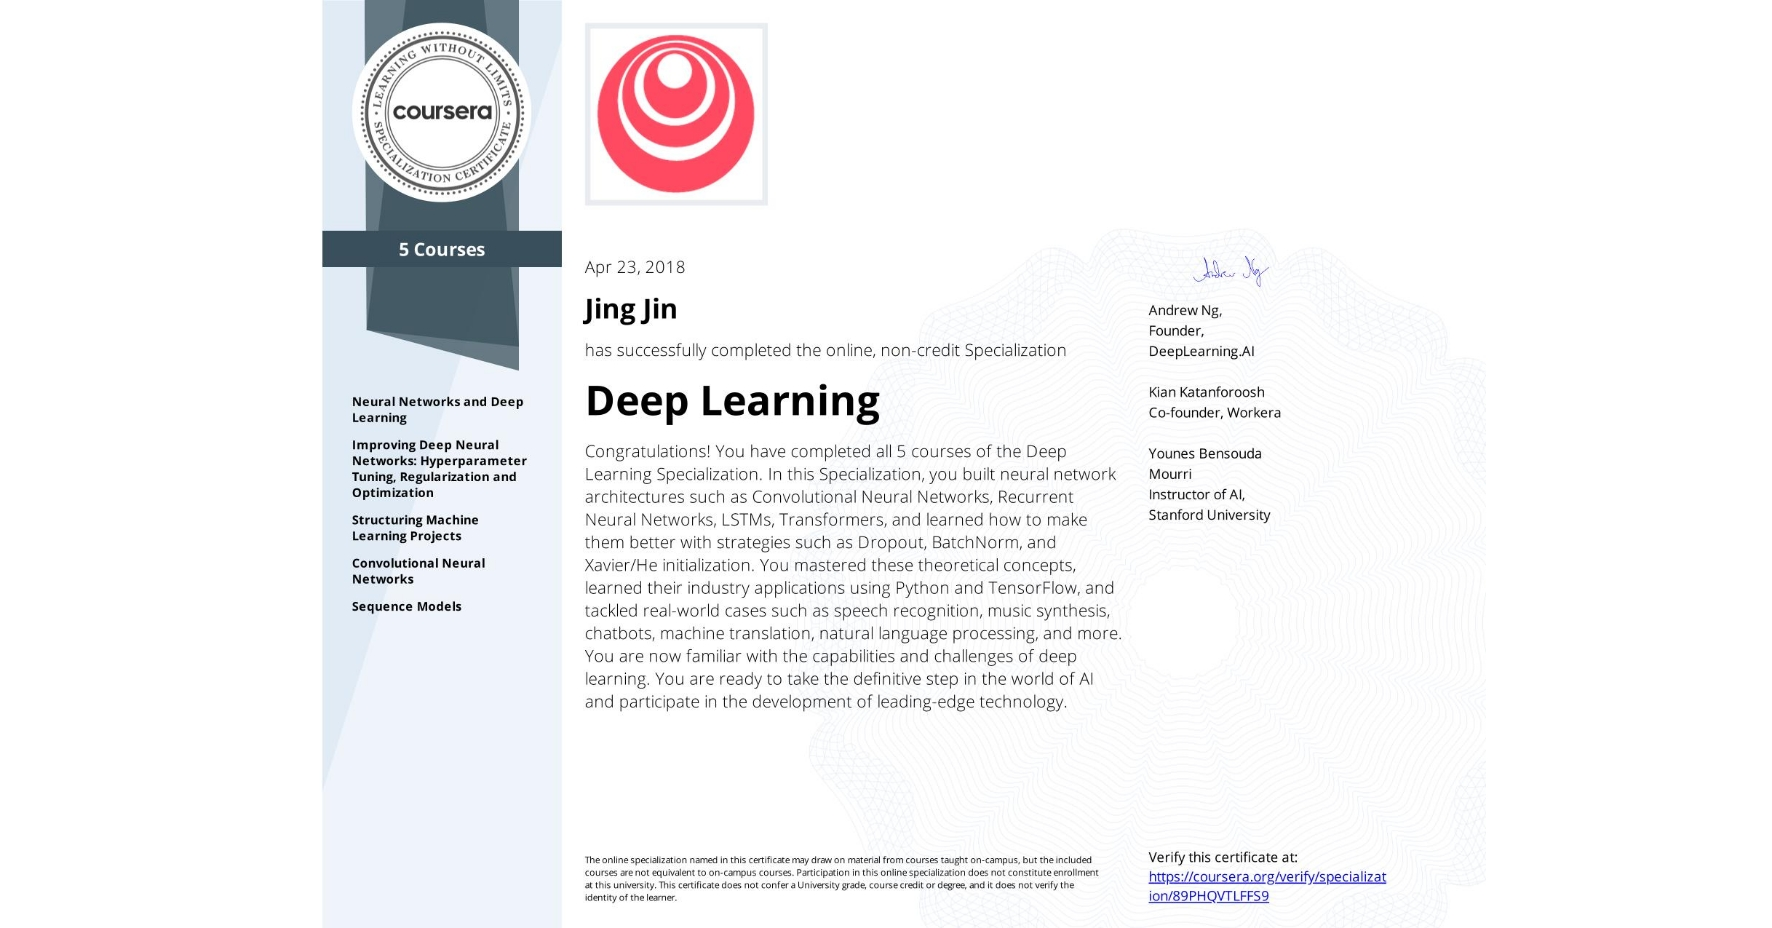 View certificate for Jing Jin, Deep Learning, offered through Coursera. The Deep Learning Specialization is designed to prepare learners to participate in the development of cutting-edge AI technology, and to understand the capability, the challenges, and the consequences of the rise of deep learning. Through five interconnected courses, learners develop a profound knowledge of the hottest AI algorithms, mastering deep learning from its foundations (neural networks) to its industry applications (Computer Vision, Natural Language Processing, Speech Recognition, etc.).